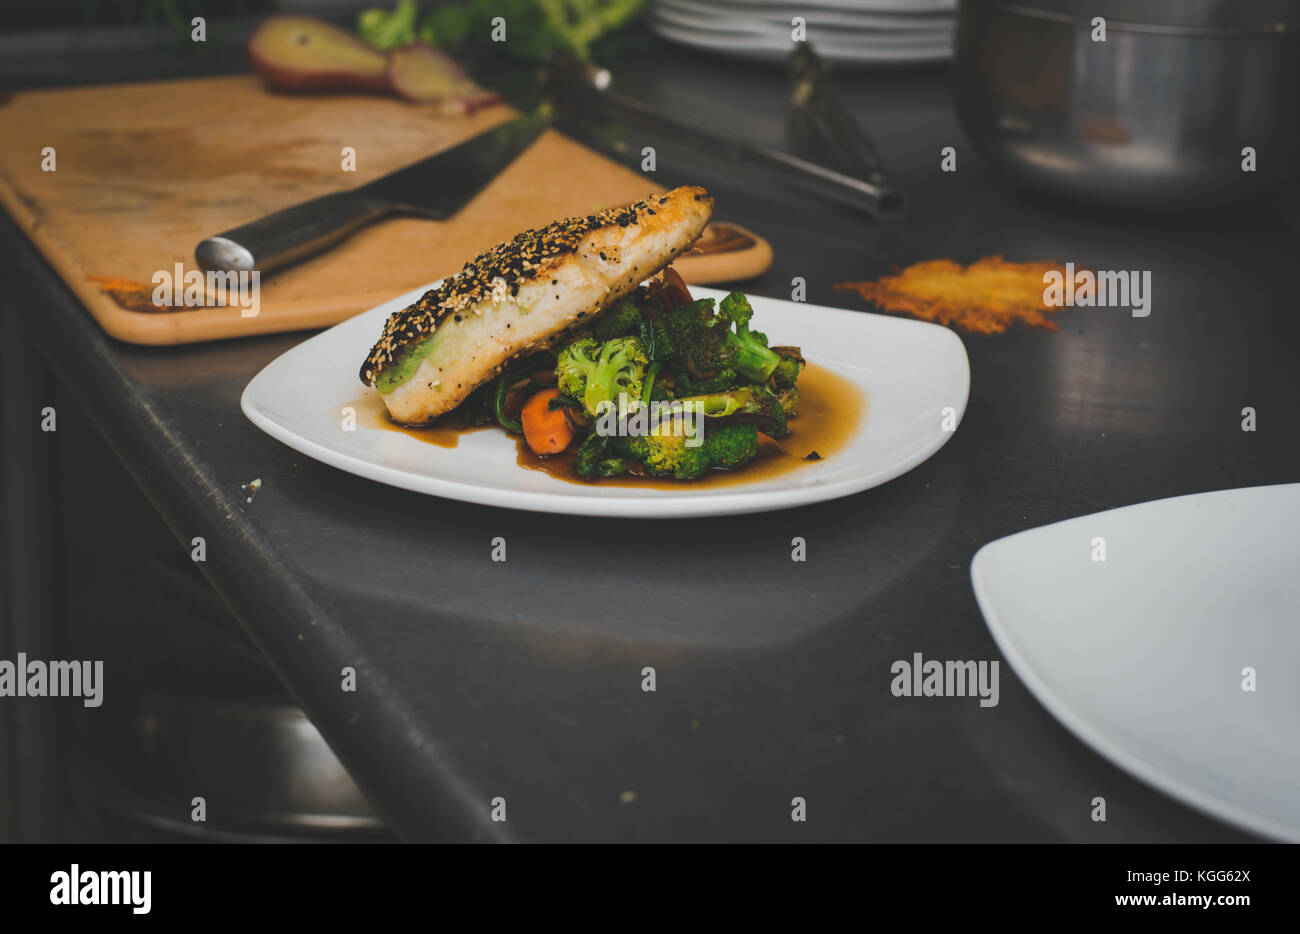 Salmon and vegetables prepared at a restaurant - Stock Image